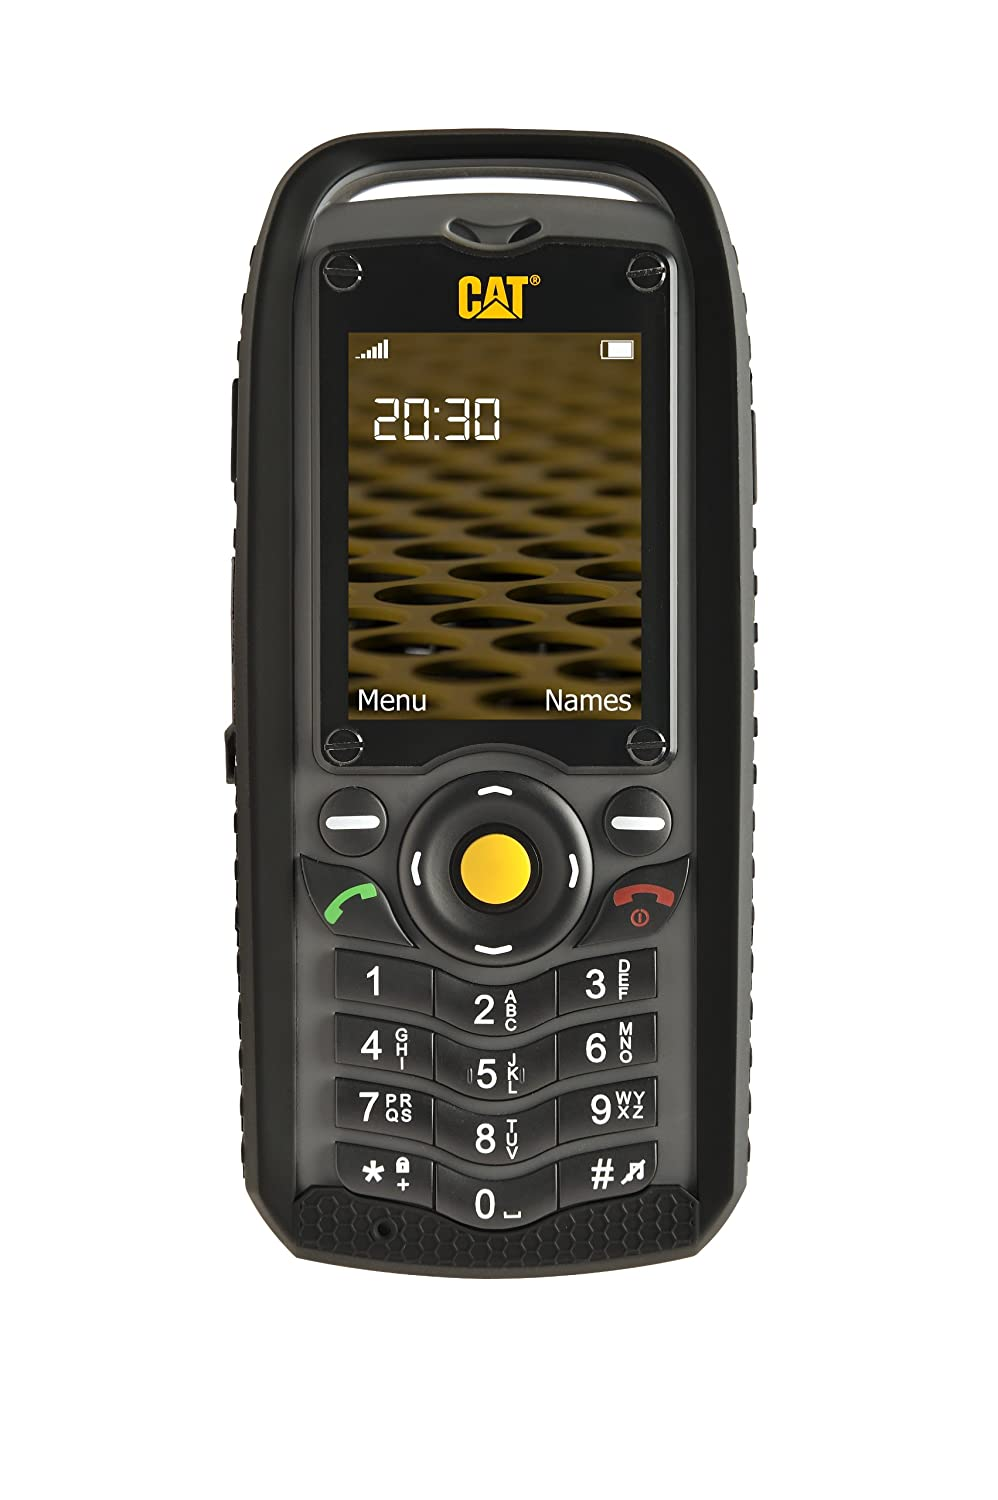 T�l�phone GSM CATERPILLAR B25 NOIR